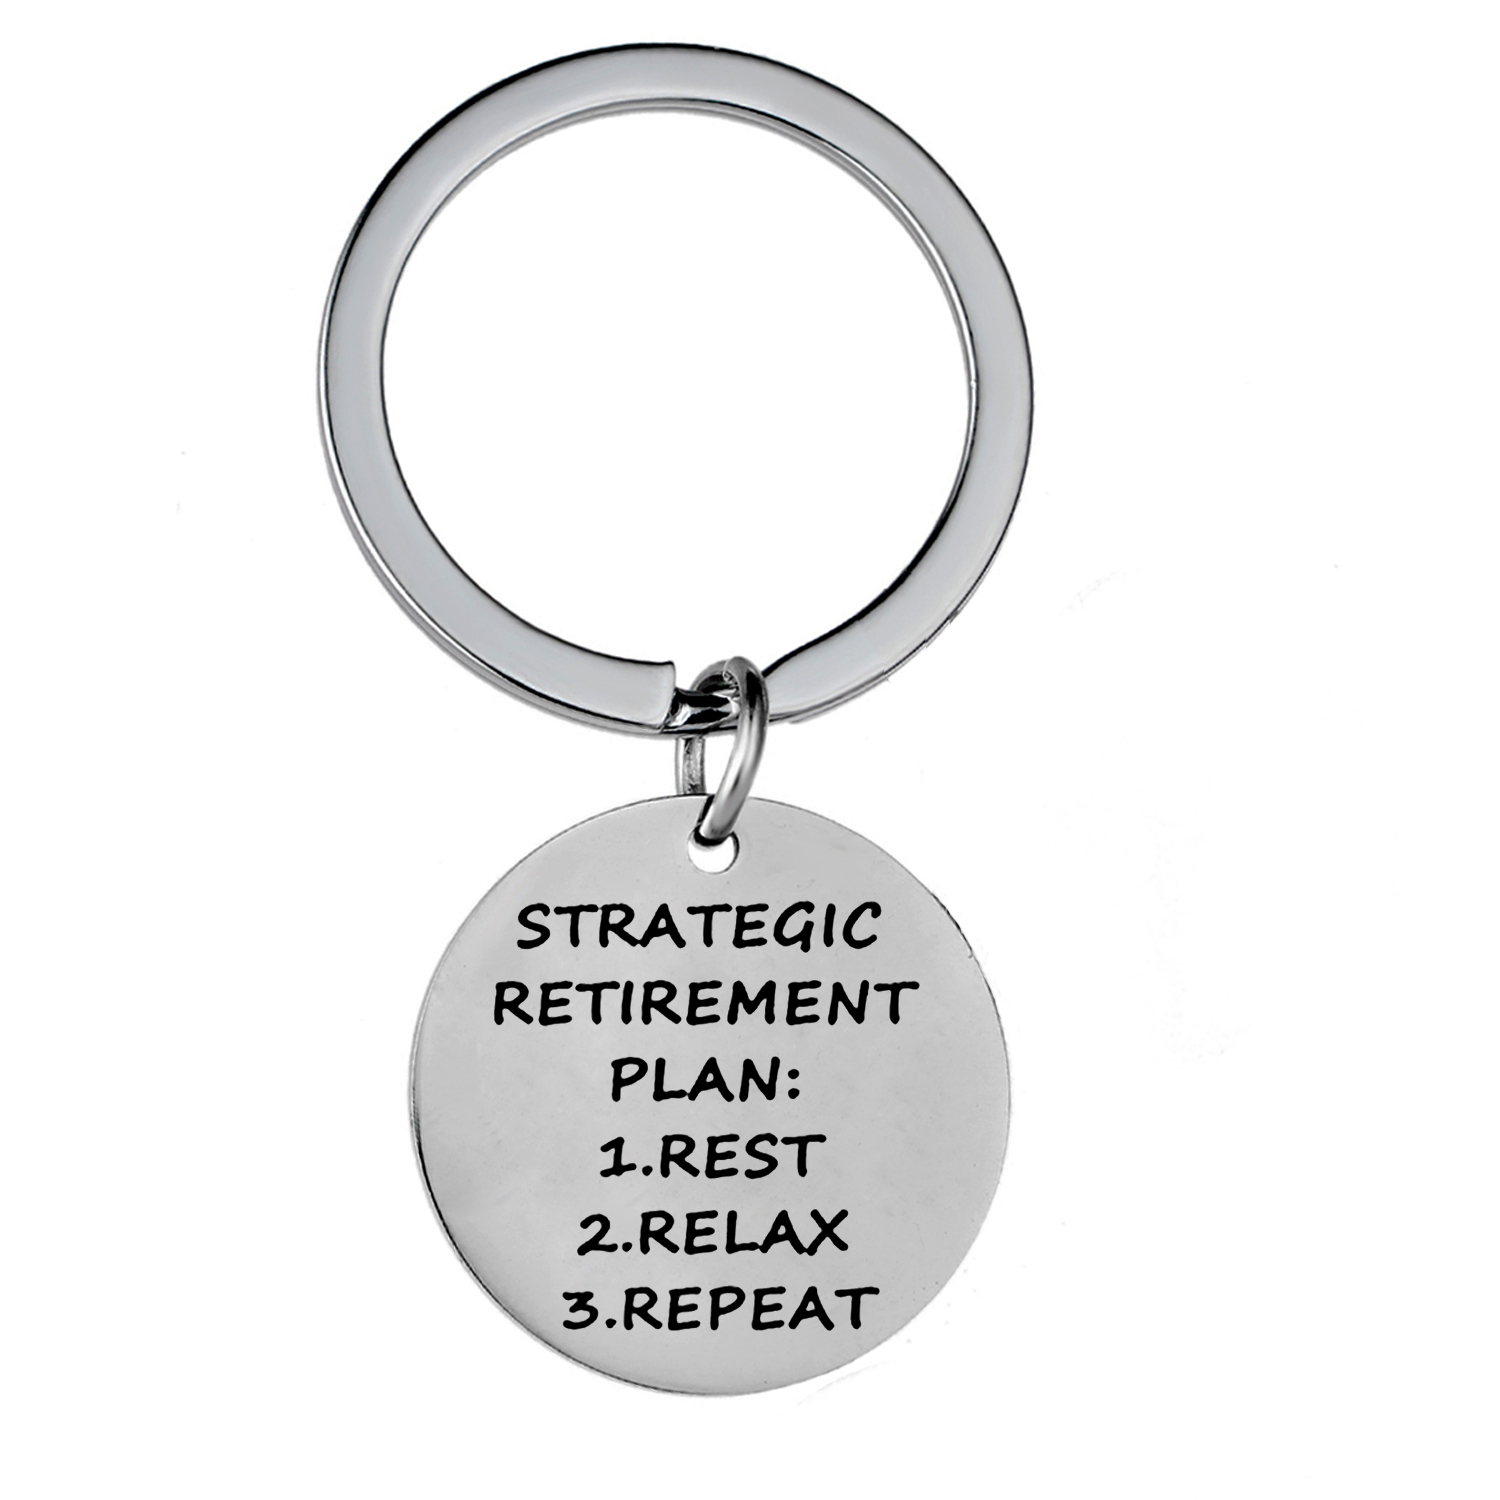 12PC Strategic Retirement Plan Keychain Stainless Steel Charm Pendant Keyring Grandpa Grandma Retirement Gifts Key Ring Jewelry image